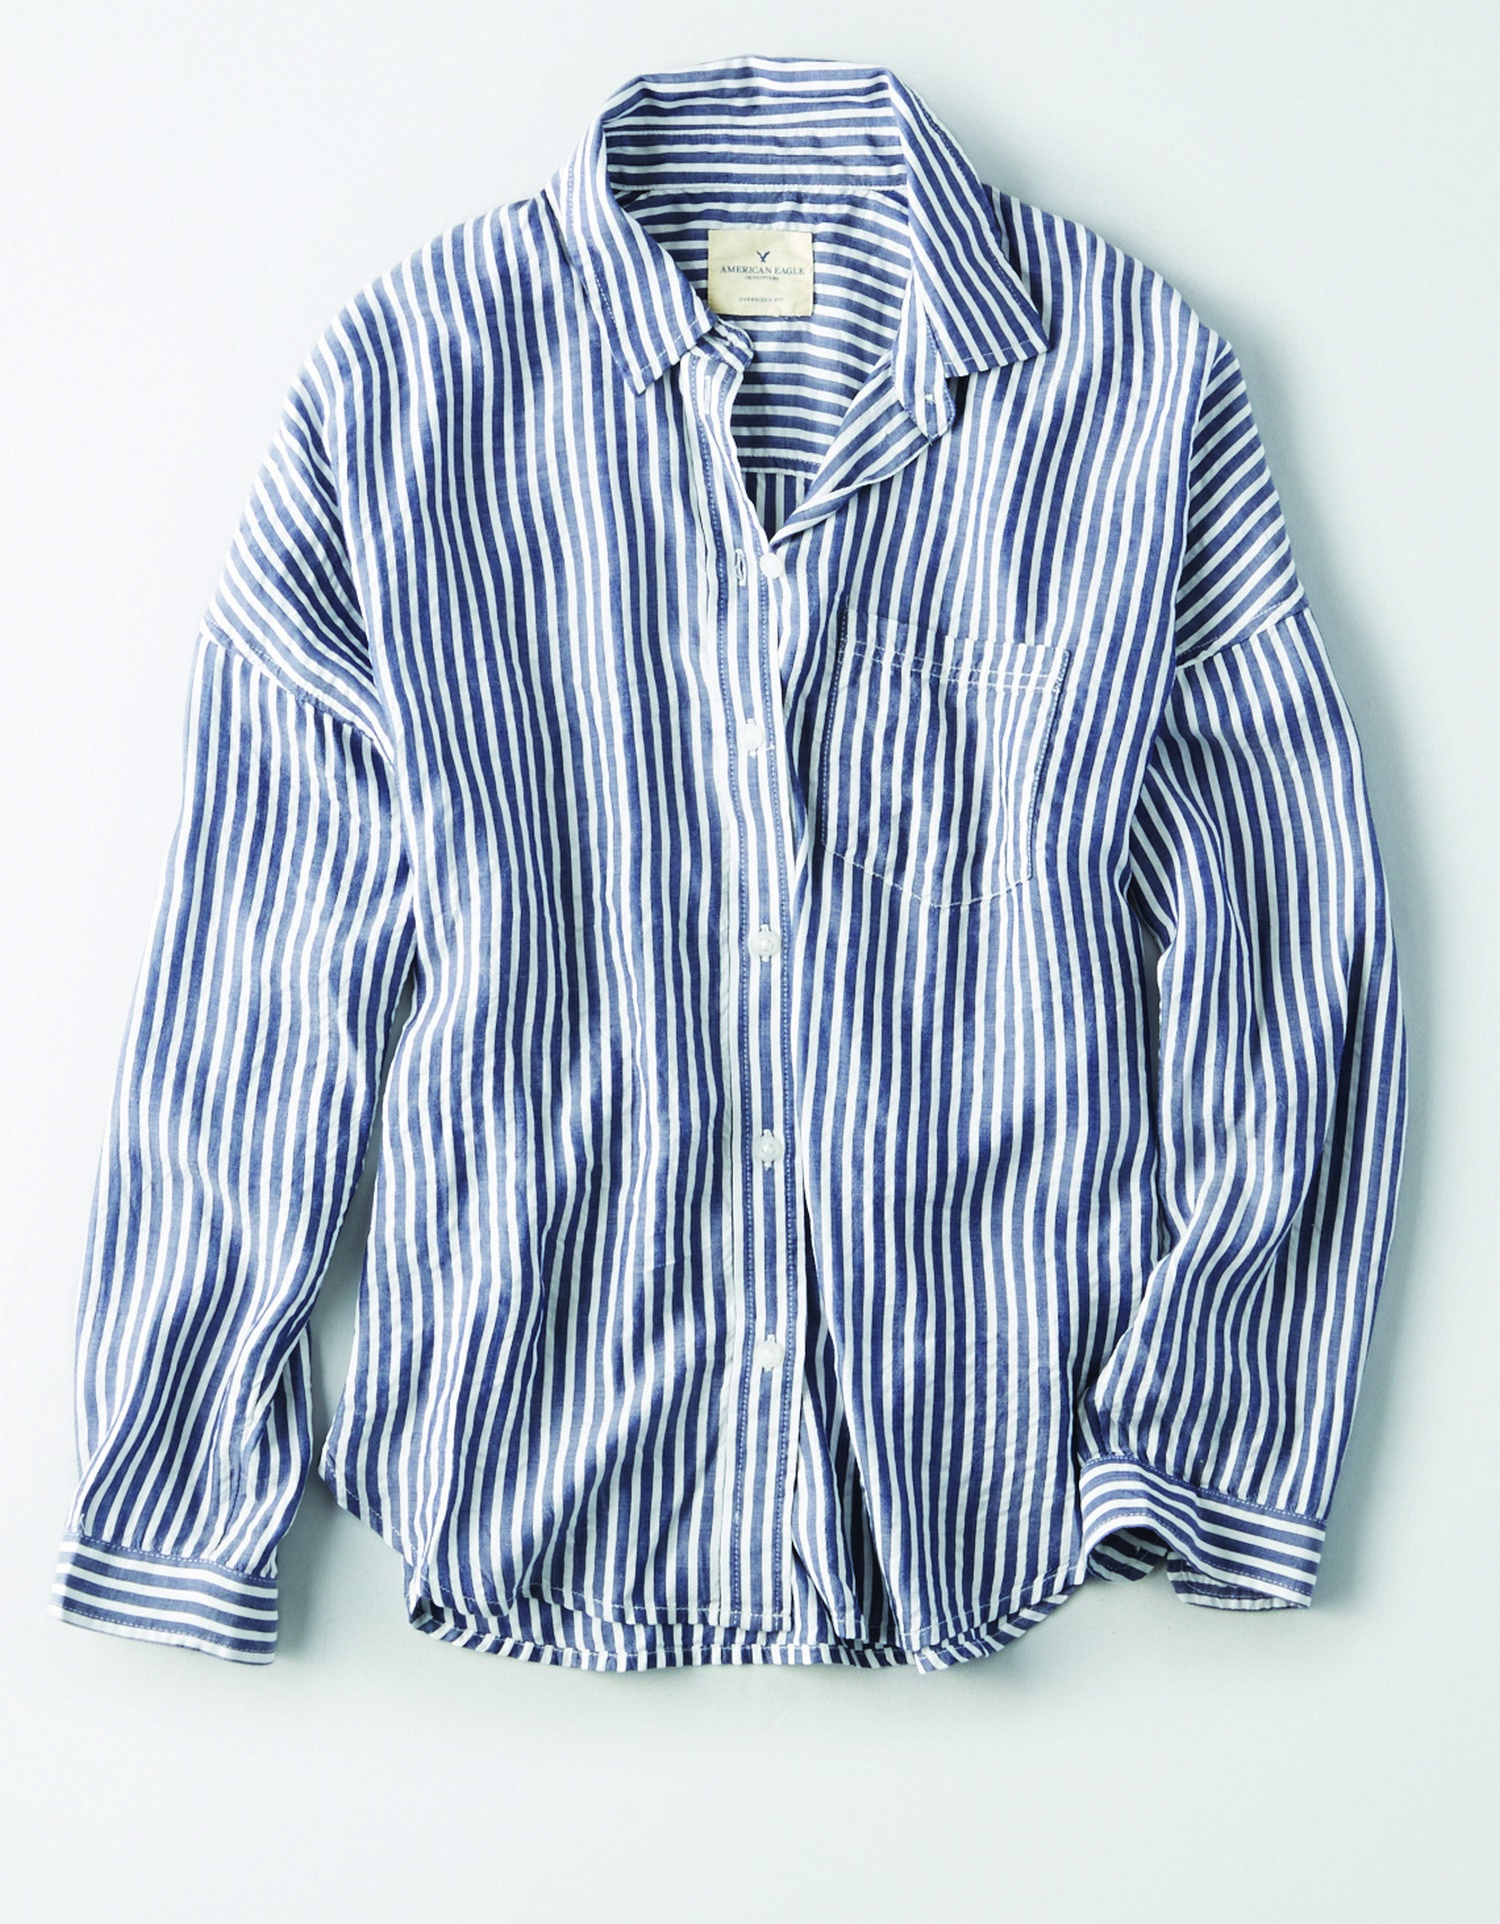 AE - W - Apparel - STRIPED DOLMAN - Navy Blue and White Vertical Stripes - Button Down - Left Chest pocket - White Buttons BG *Tracked